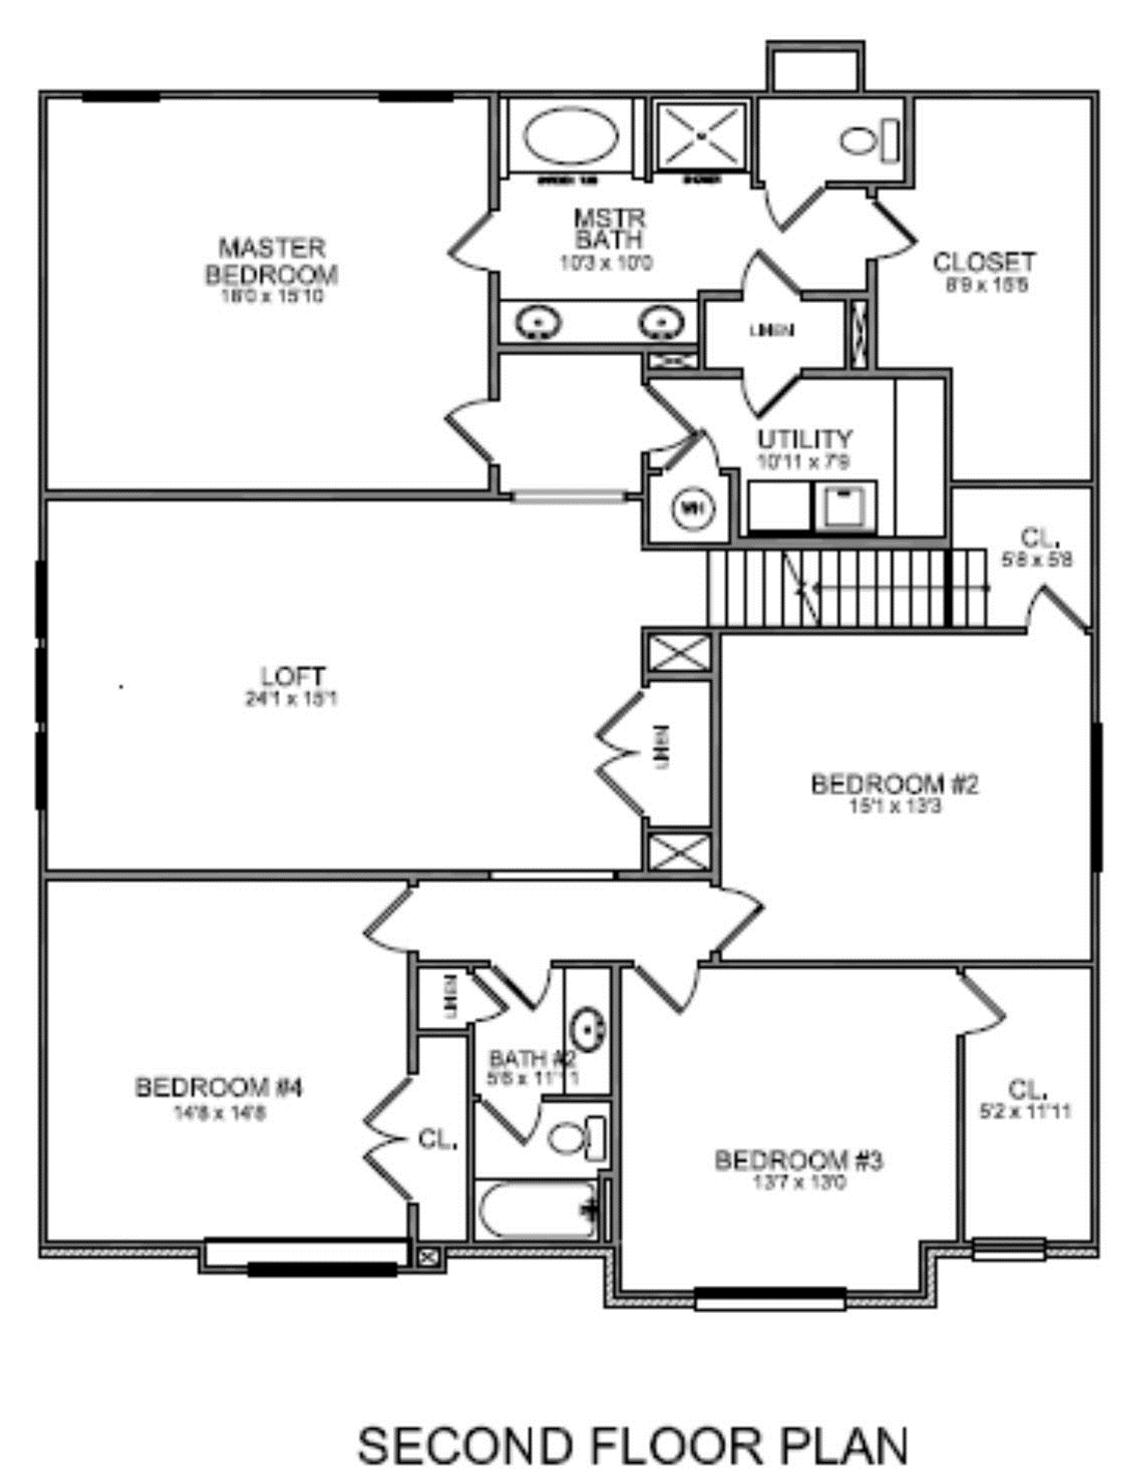 Floor plans for Jack and jill bathroom with hall access